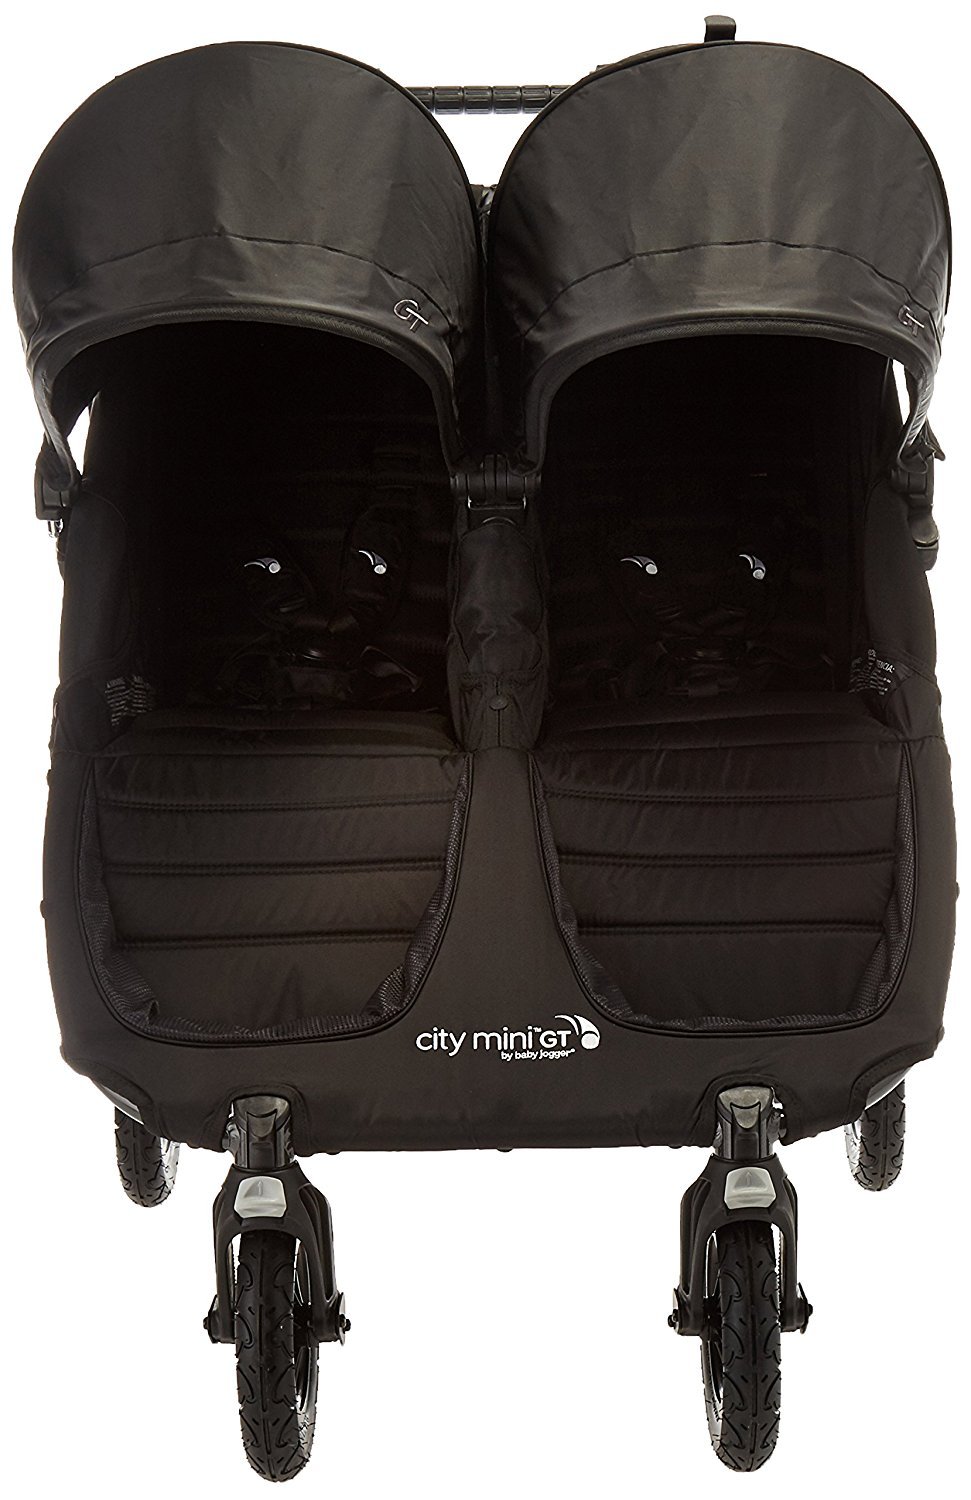 City Mini Gt Double By Baby Jogger